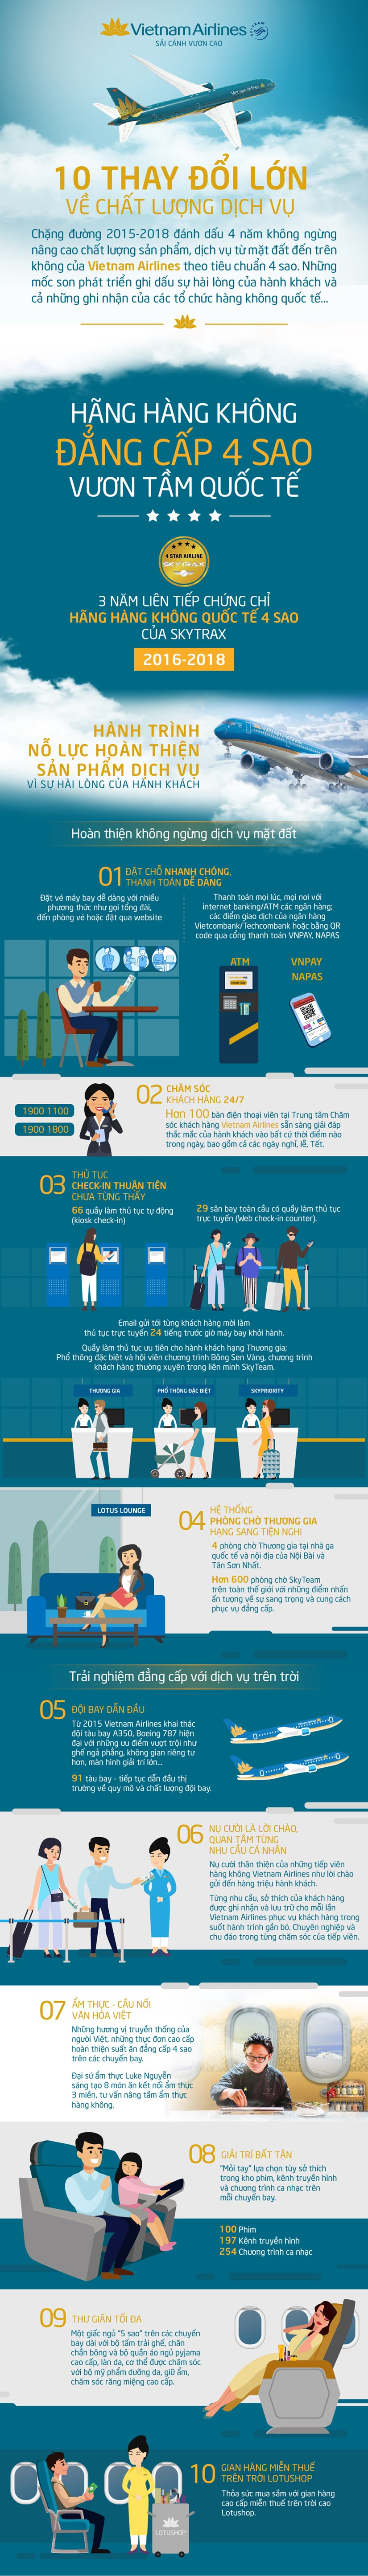 [Infographics] 10 thay doi lon ve chat luong dich vu Vietnam Airlines hinh anh 1